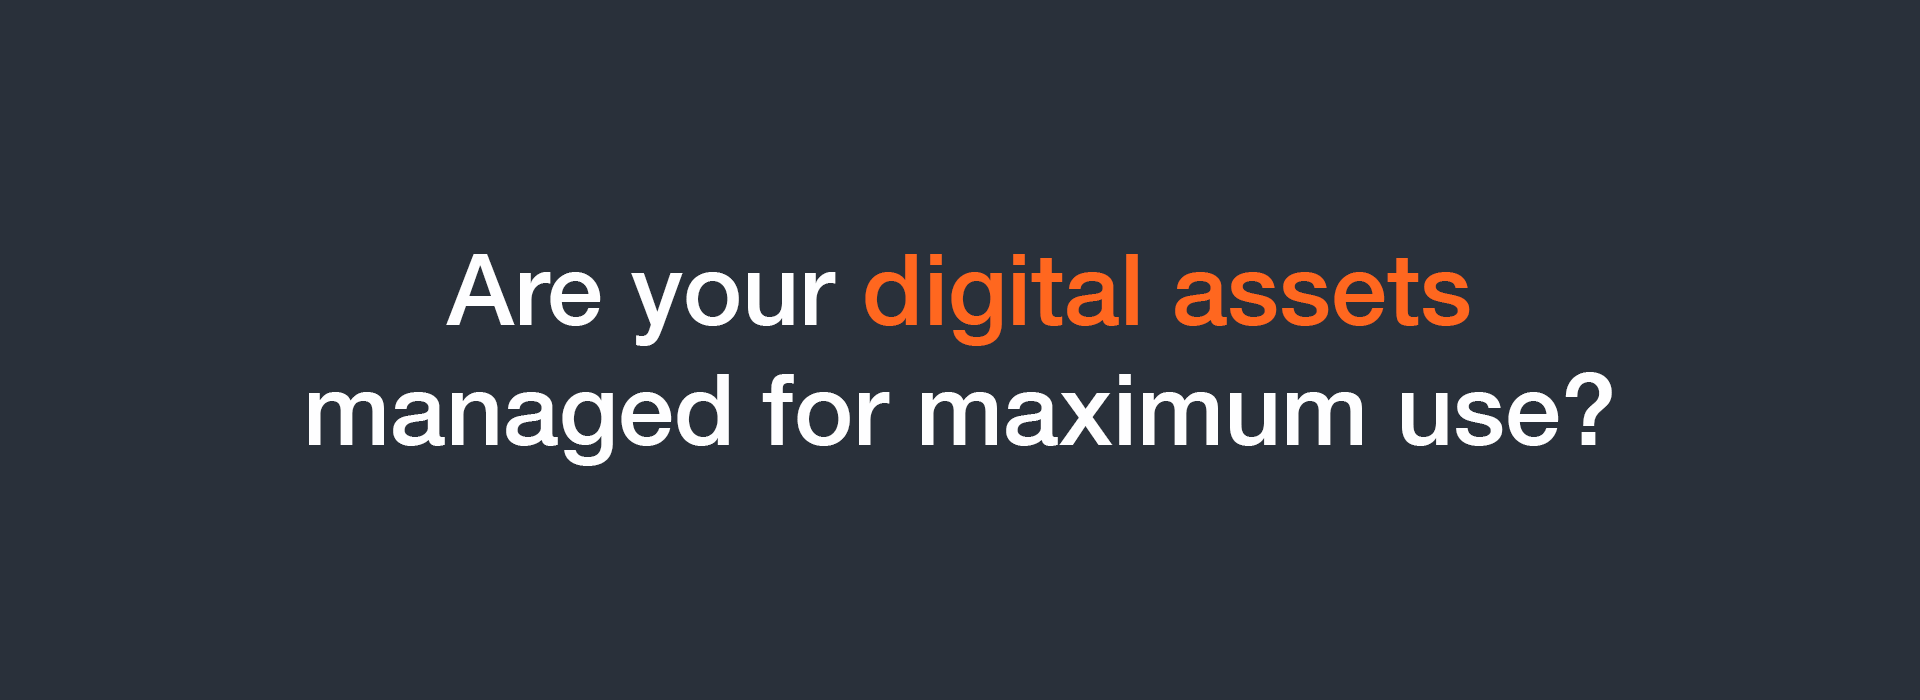 Are your digital assets managed for maximum use?